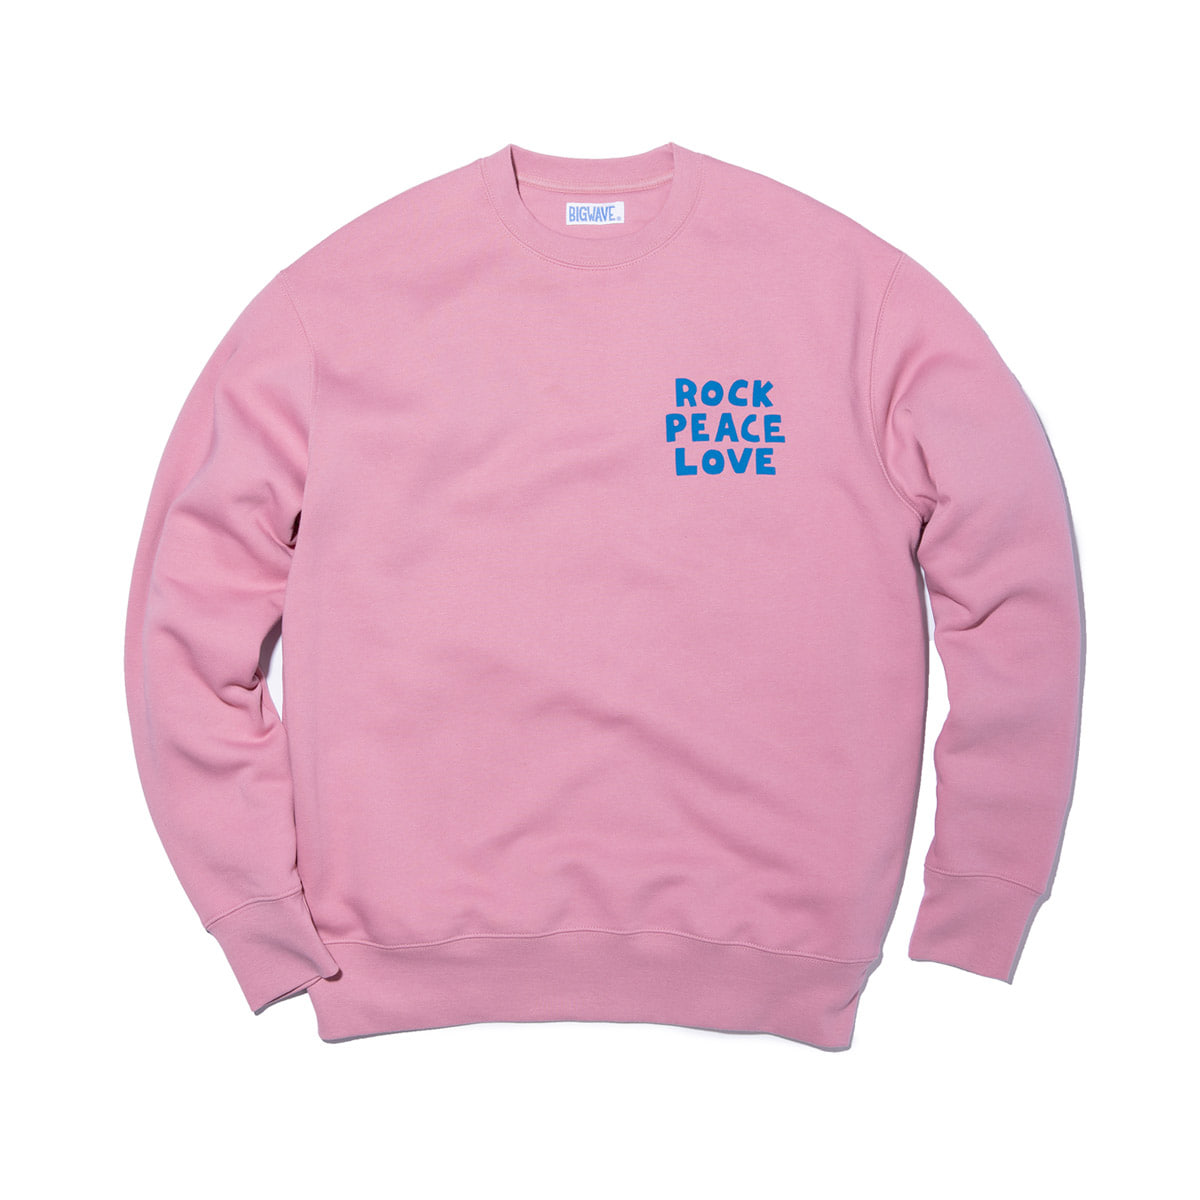 [BIG WAVE] ROCK PEACE LOVE SWEAT 'PINK'